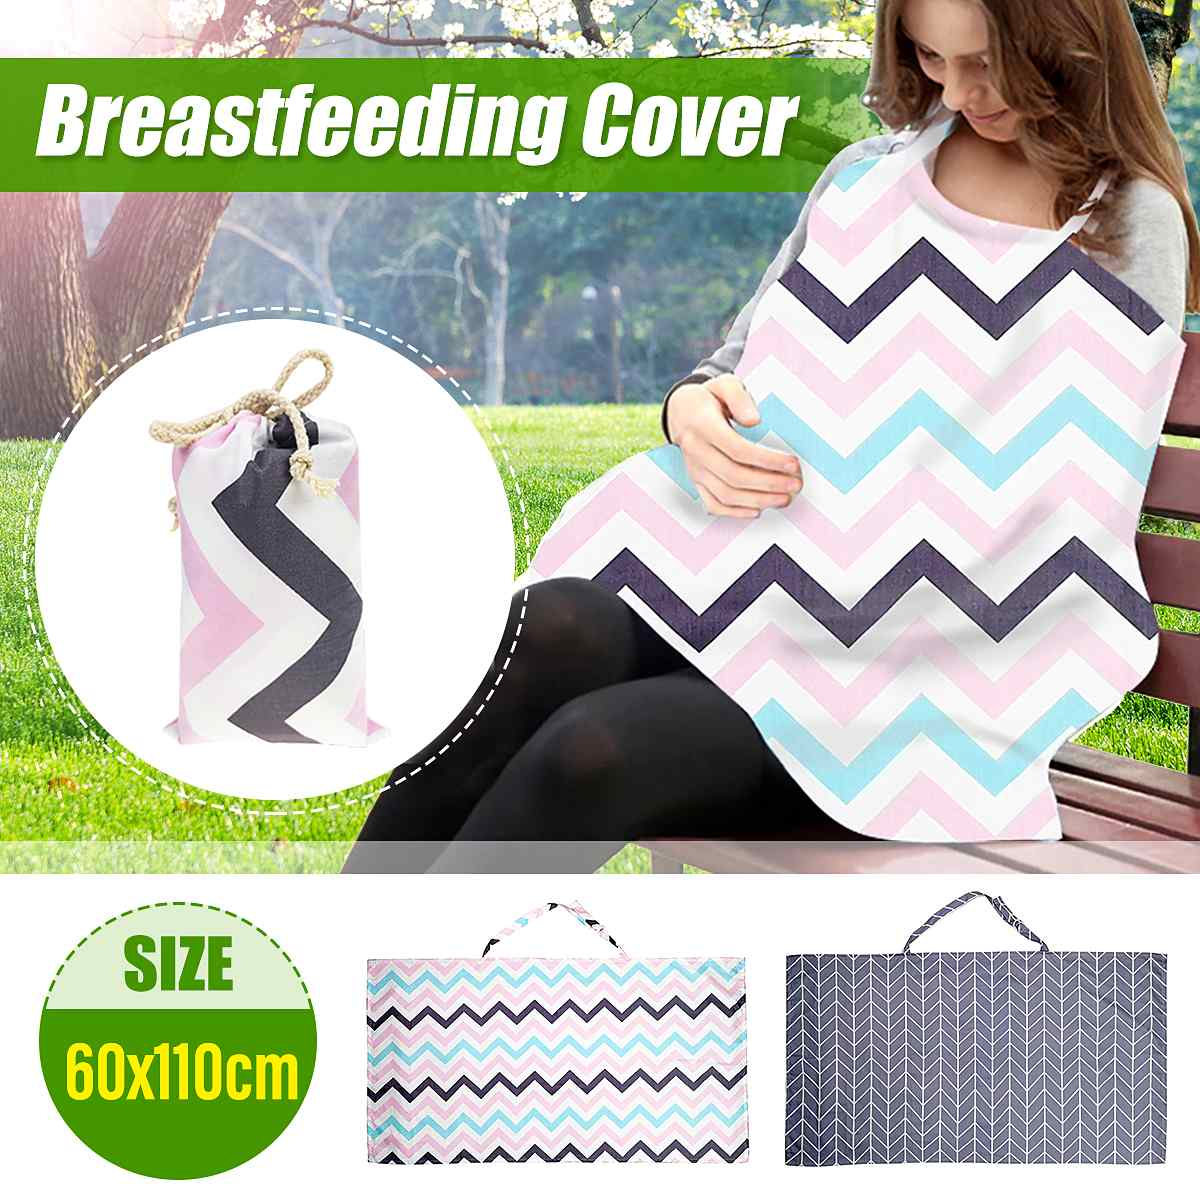 Mother Nursing Cover Outing Breastfeeding Towel Cotton Baby Feeding Anti-glare Nursing Cloth Apron 60x110cm + Storage Bag